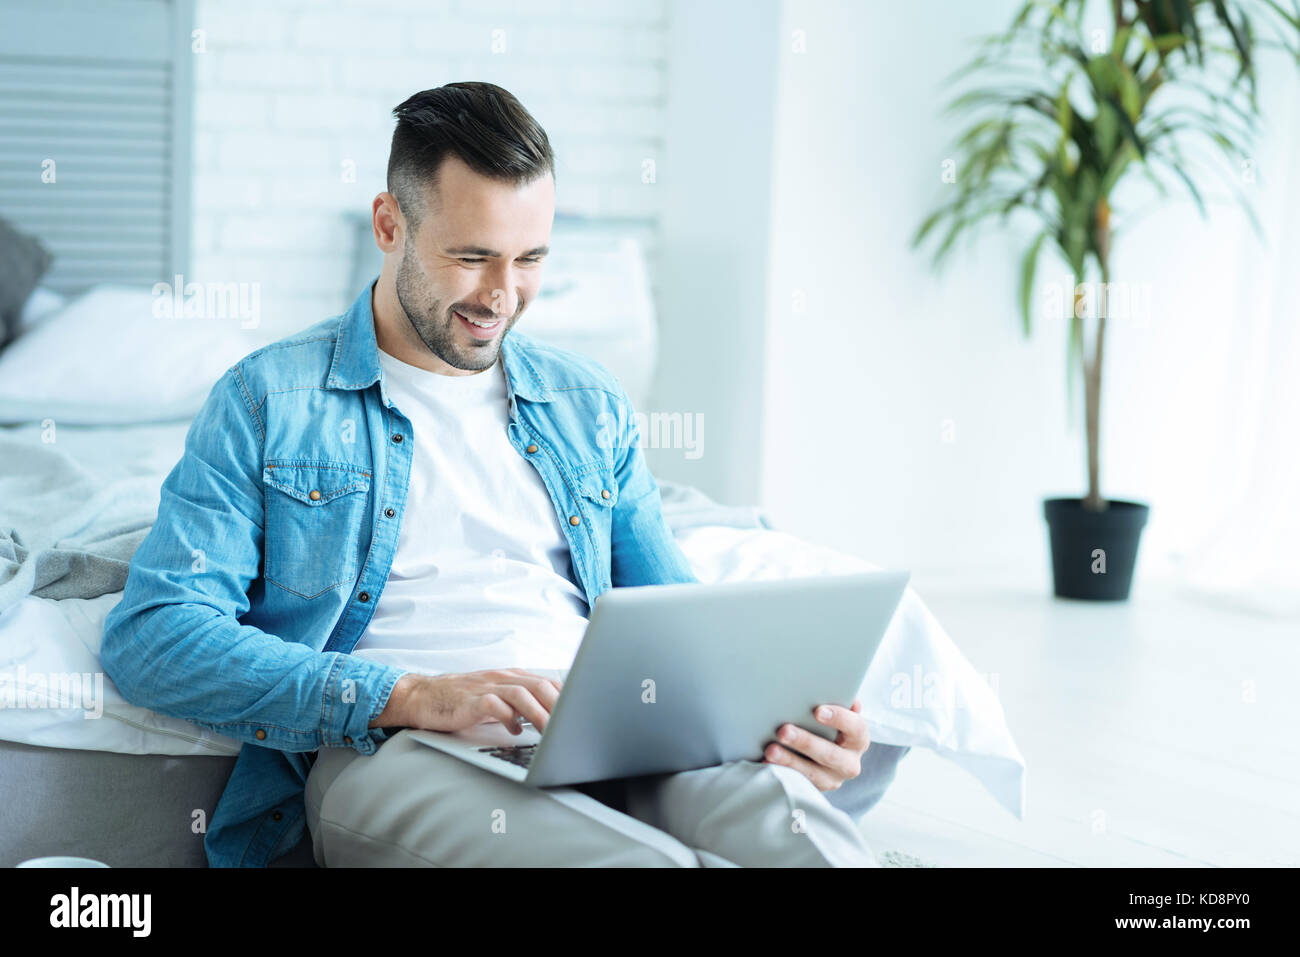 Joyful man grinning broadly while using laptop - Stock Image